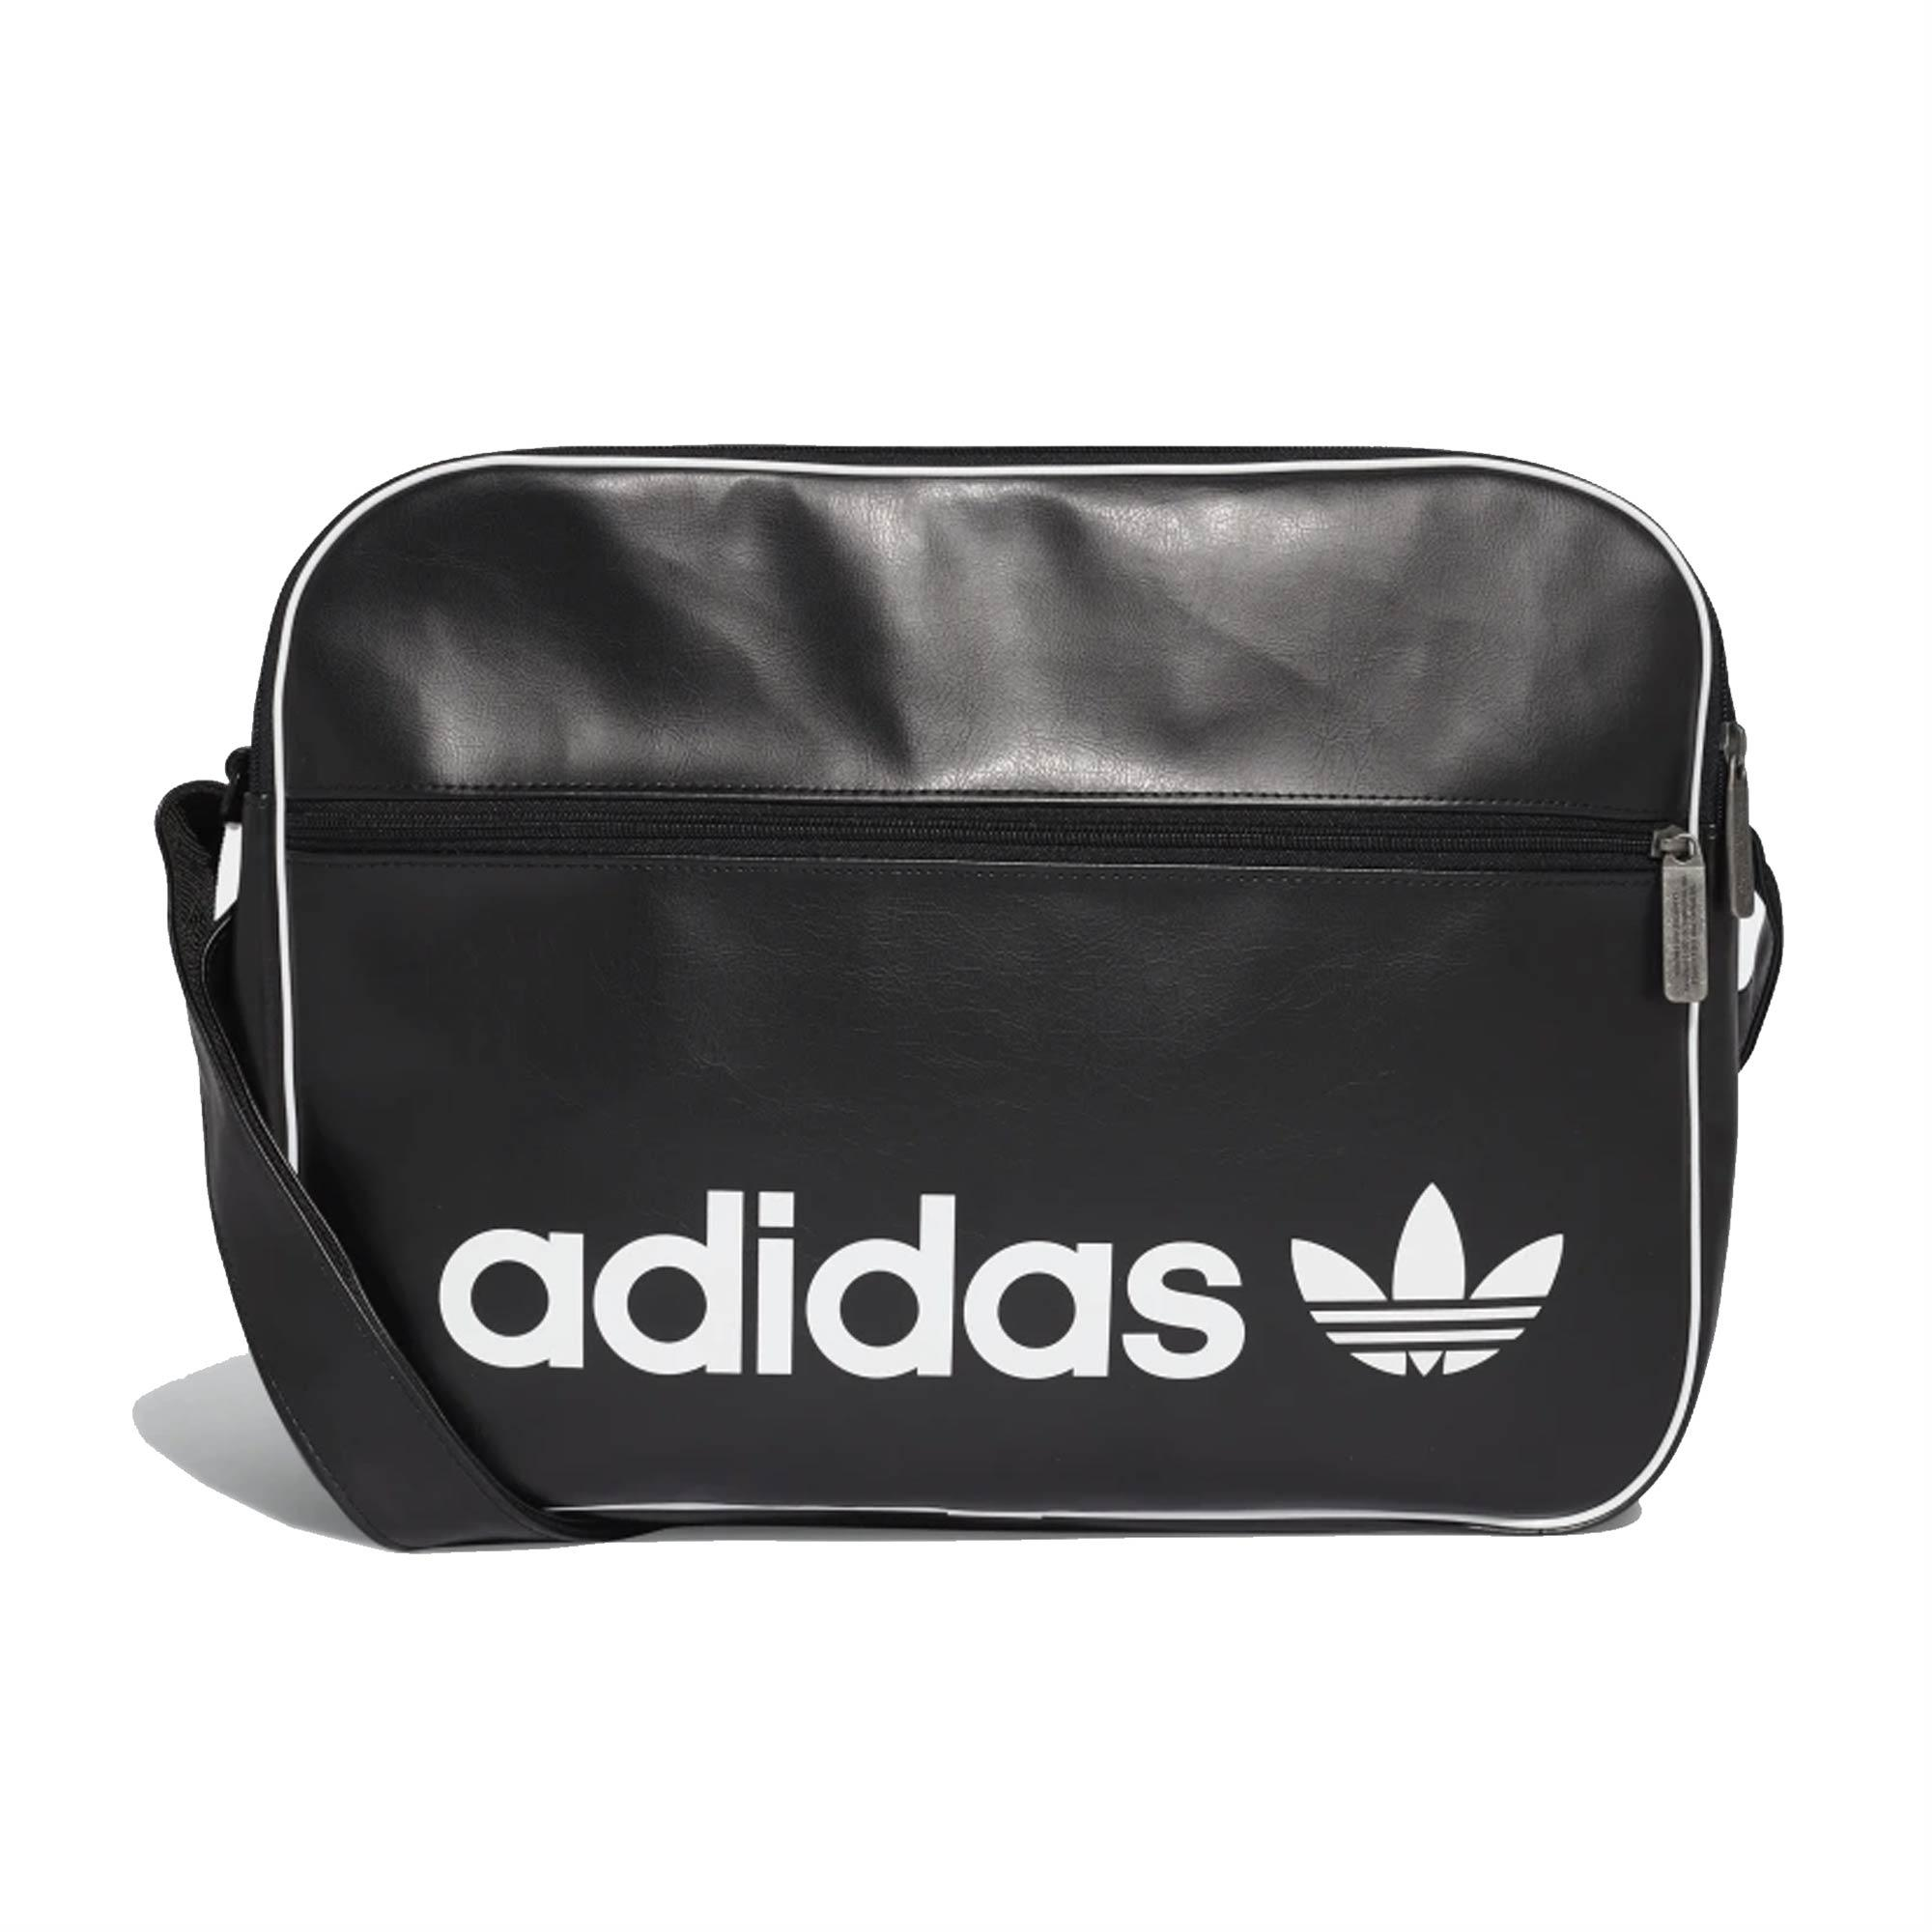 a74f1bc540 Lyst - adidas Originals Vintage Airliner Bag - Black in Black for ...